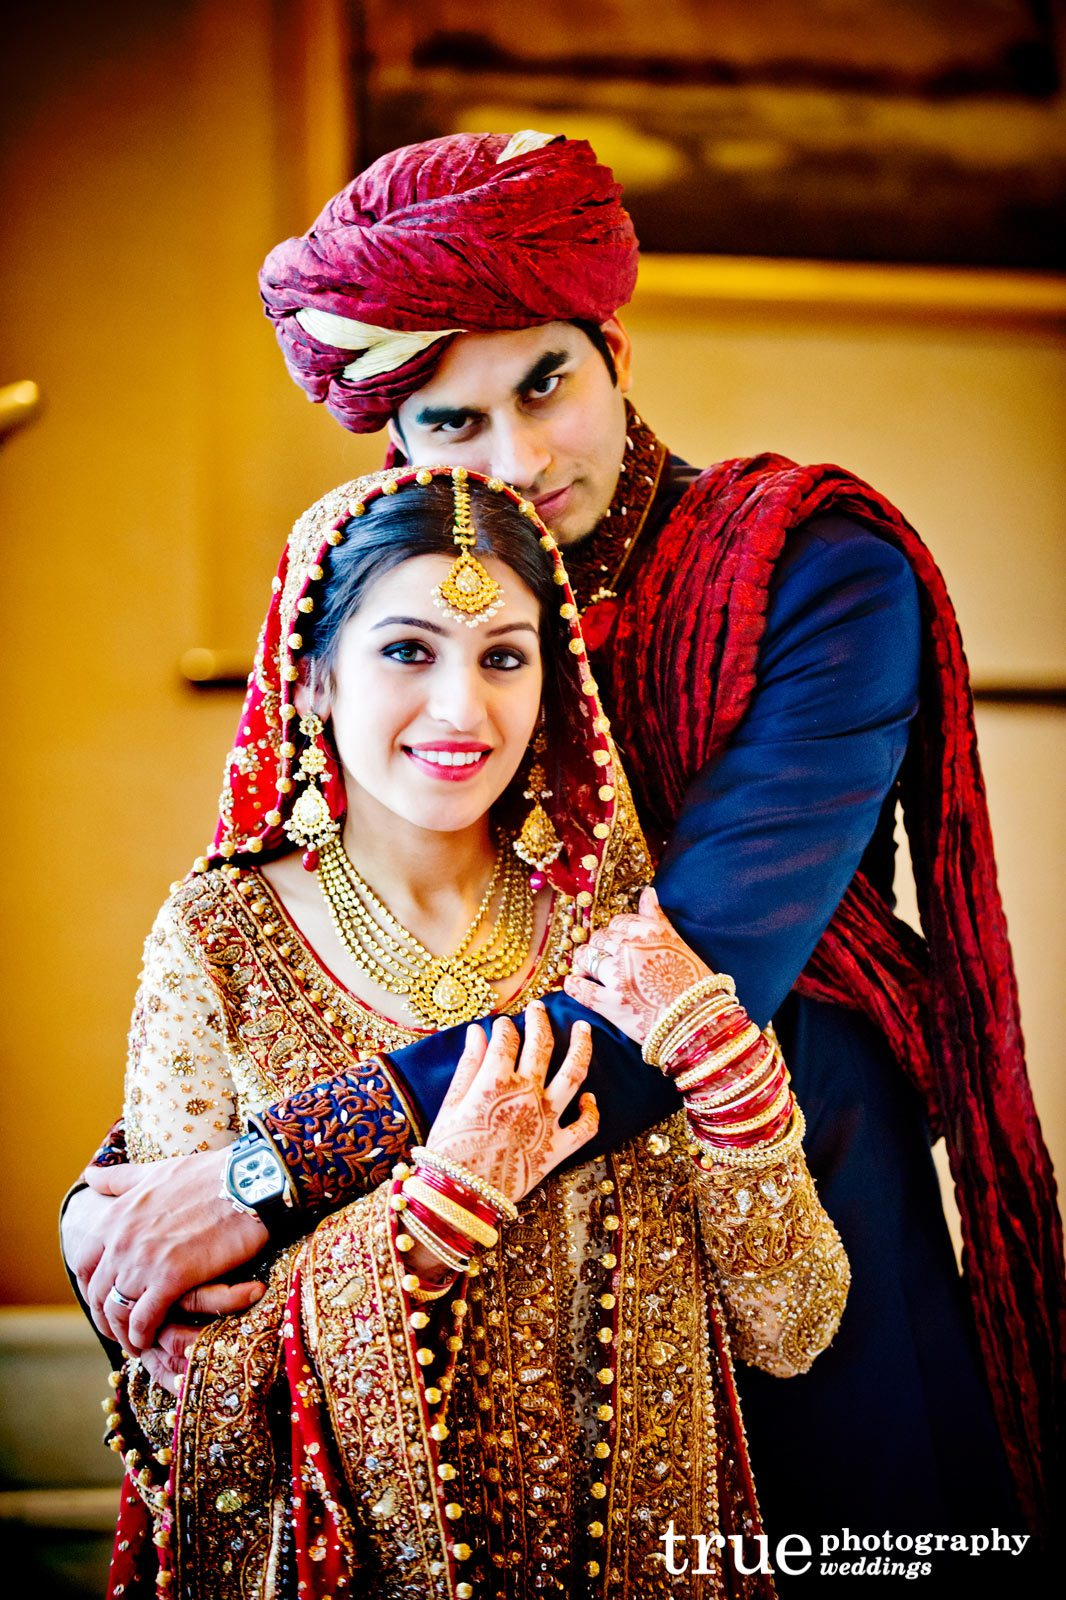 Bride and groom photography poses pakistan